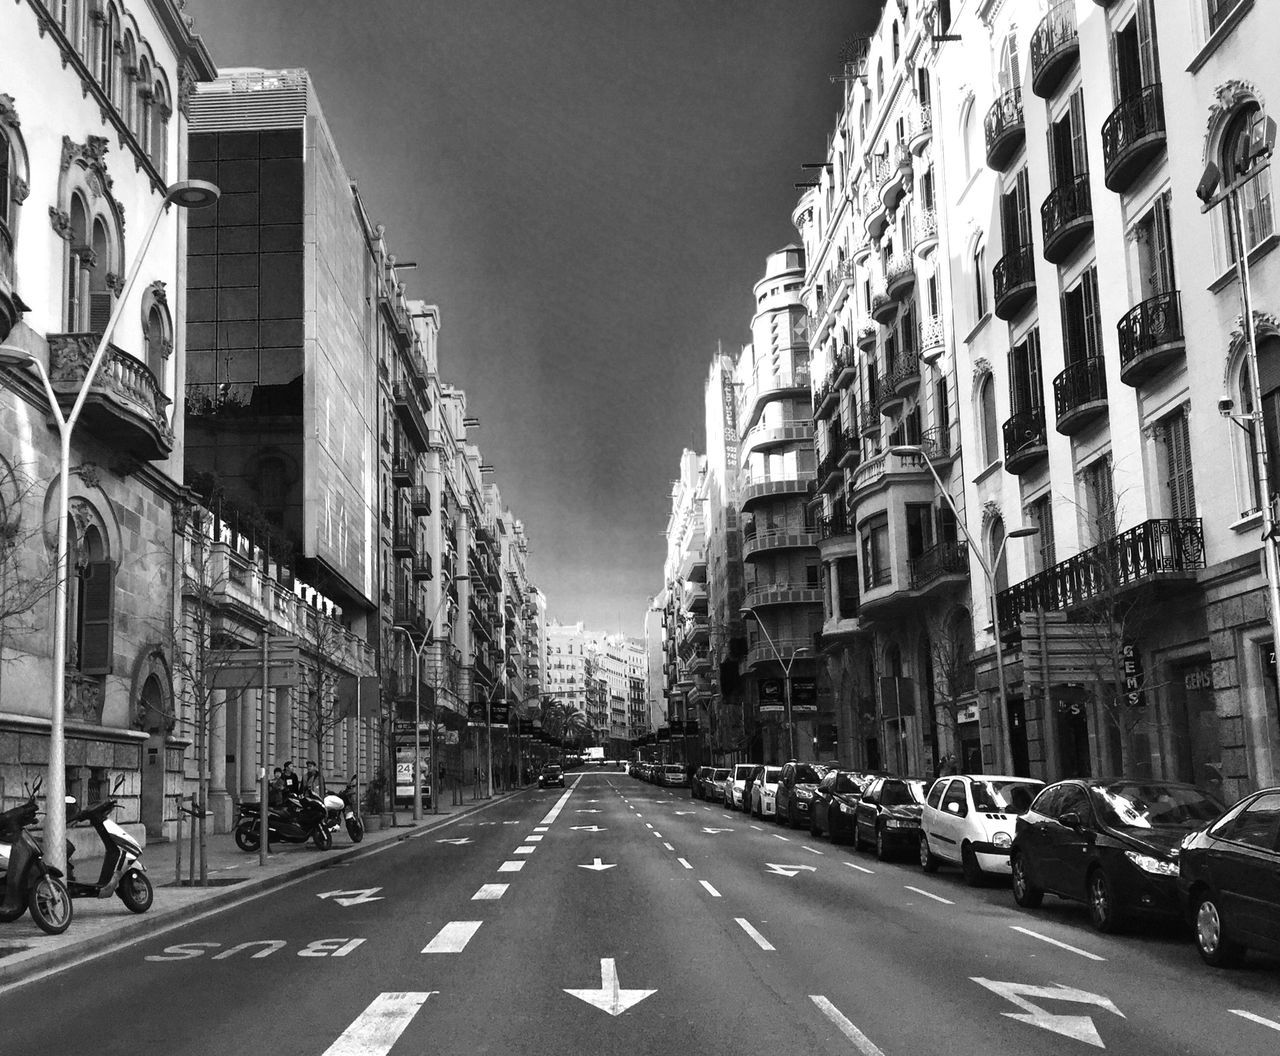 Building Exterior Street Architecture Built Structure Road Transportation Outdoors City Car Day Streetphotography Street Photography No Cars  Better City Blackandwhite Streetphoto_bw EyeEm Bnw Sky No People